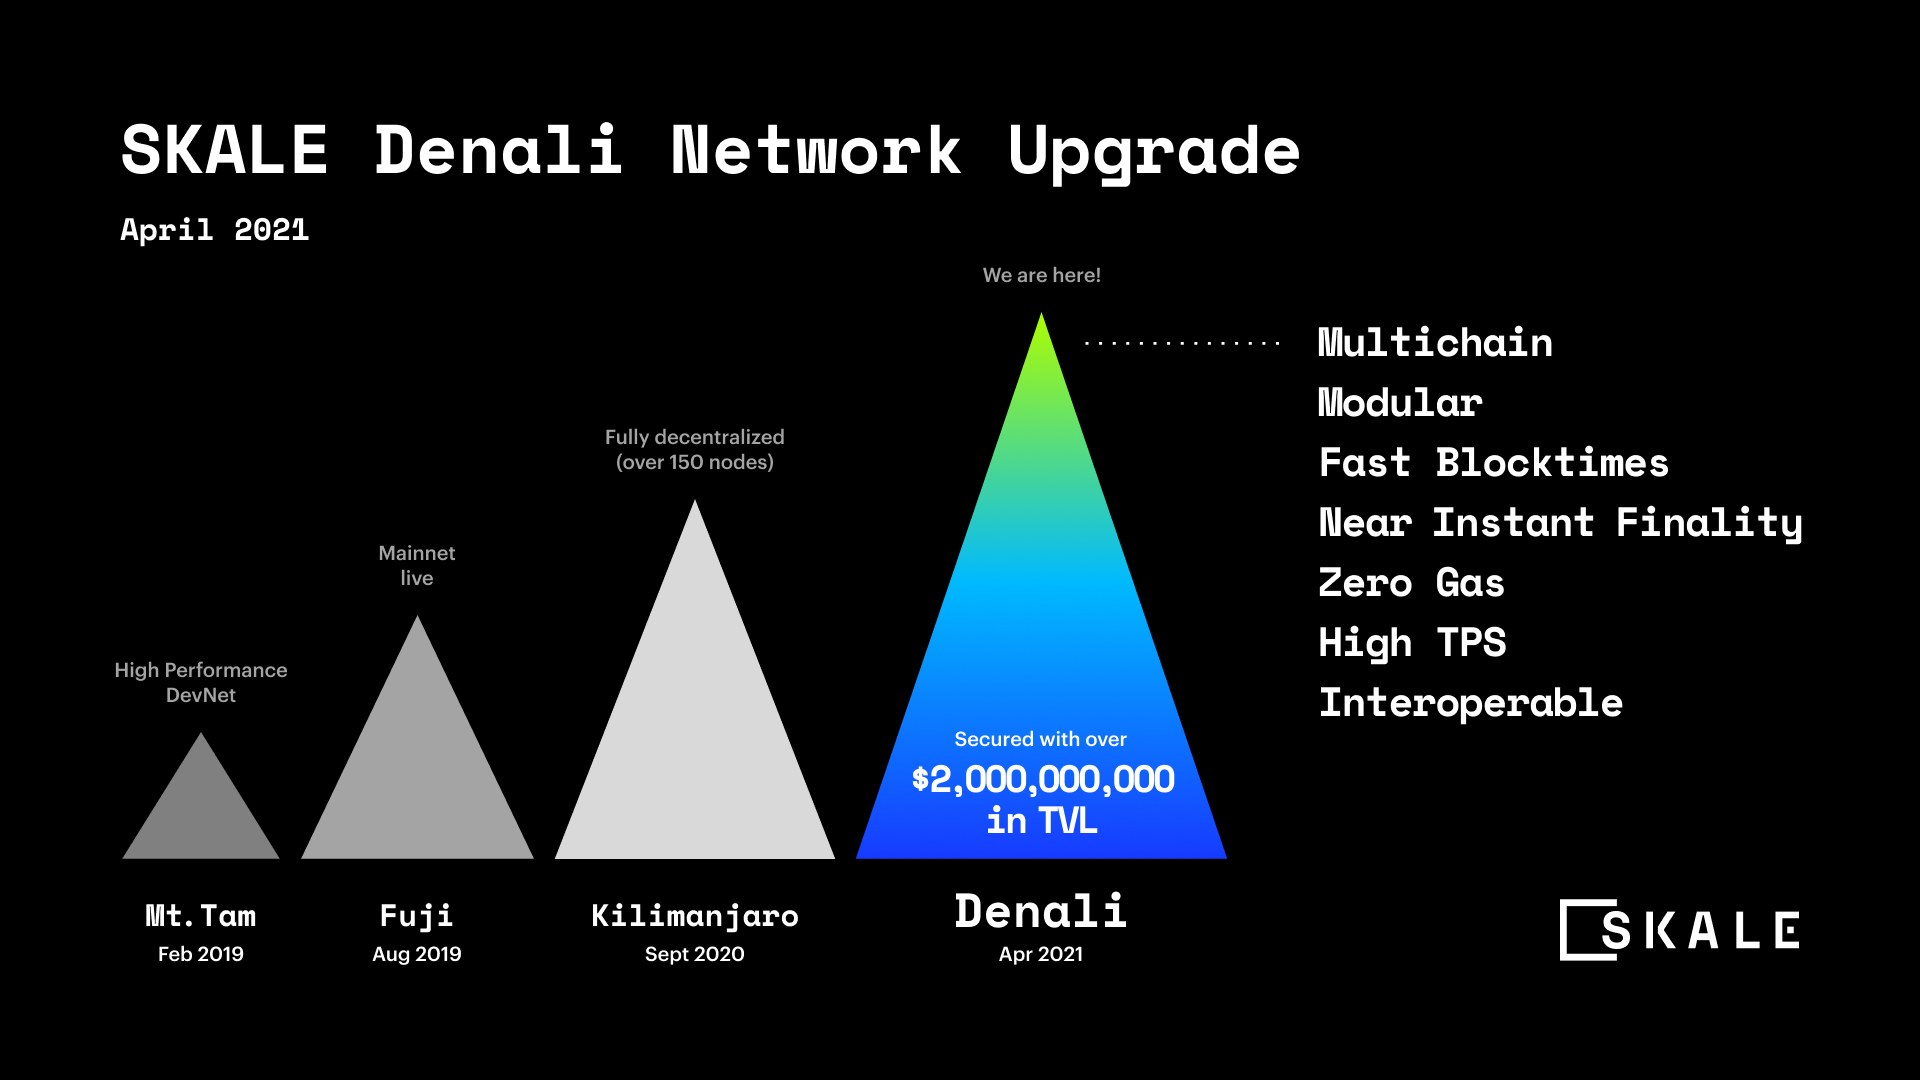 SKALE Network Mainnet Upgrade: The Climb to Denali and Beyond